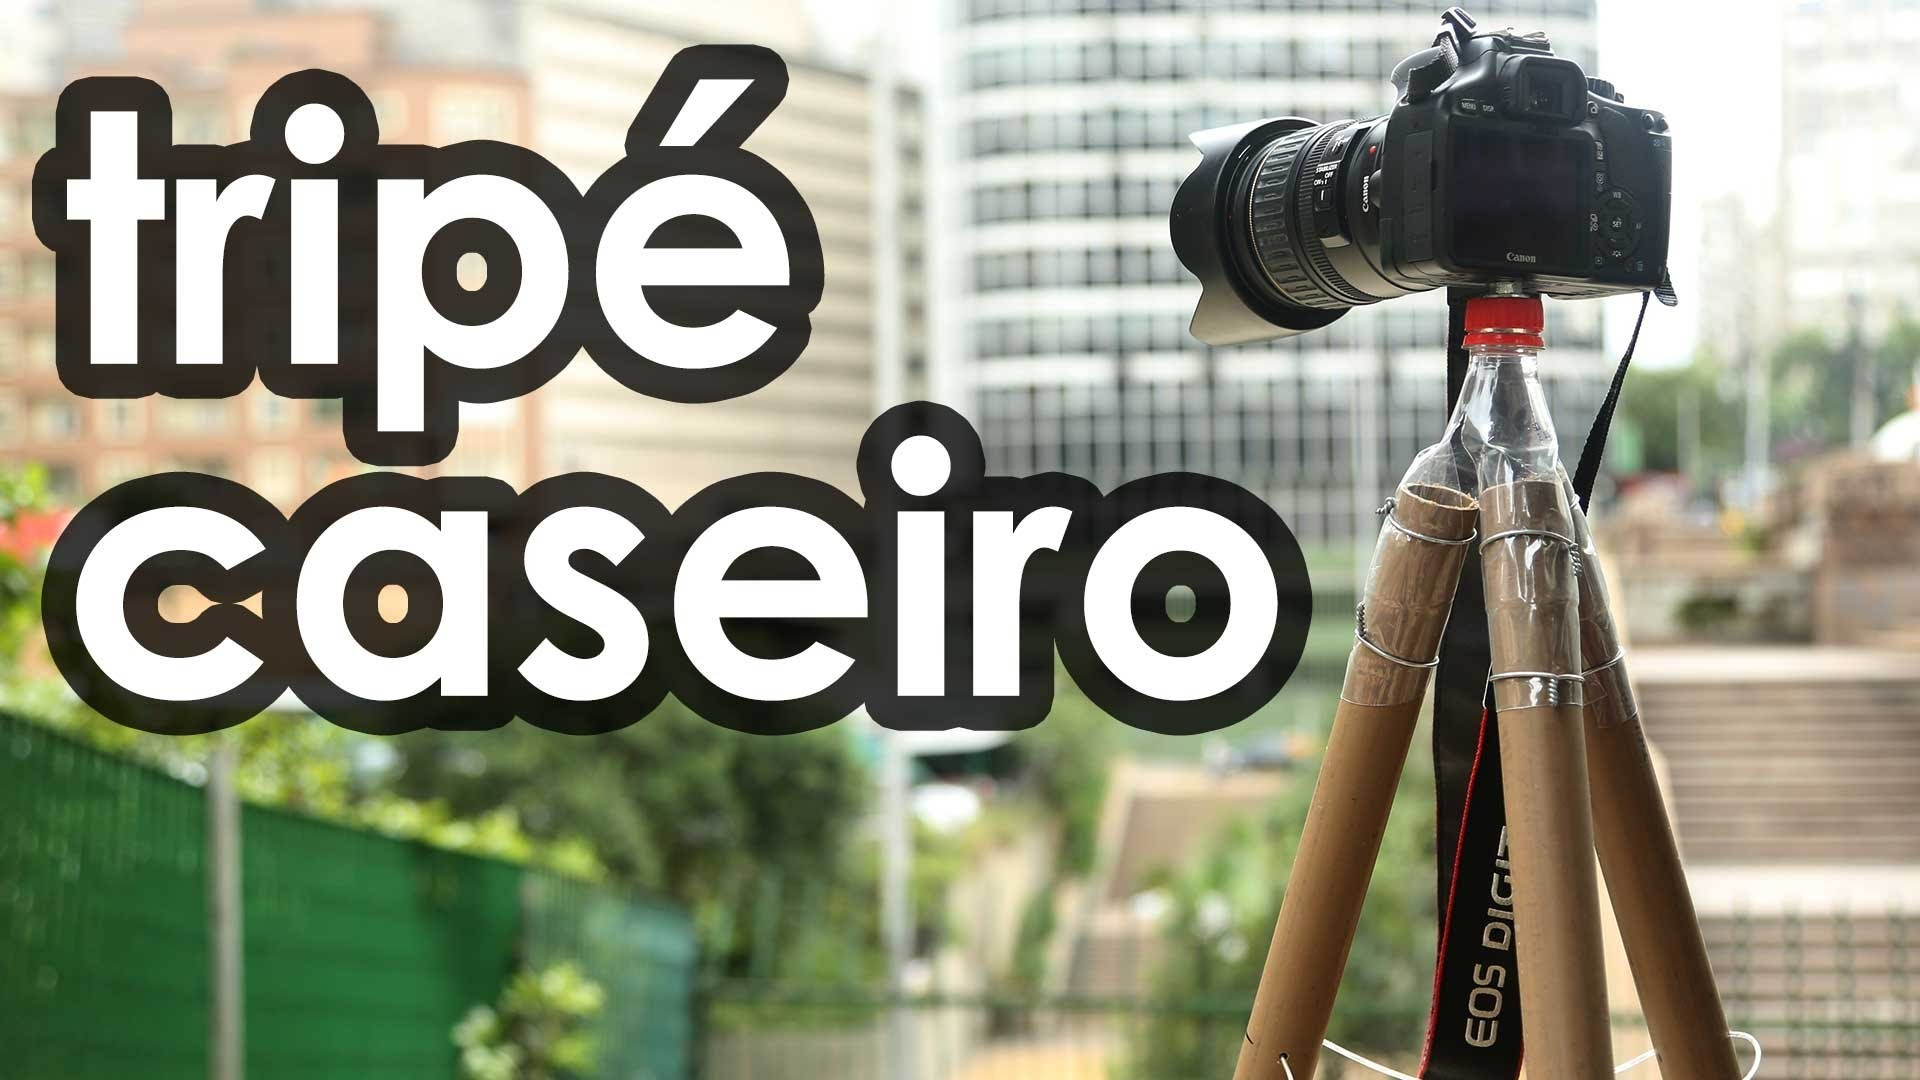 Tripé caseiro para câmera fotográfica - How to make a tripod for camera